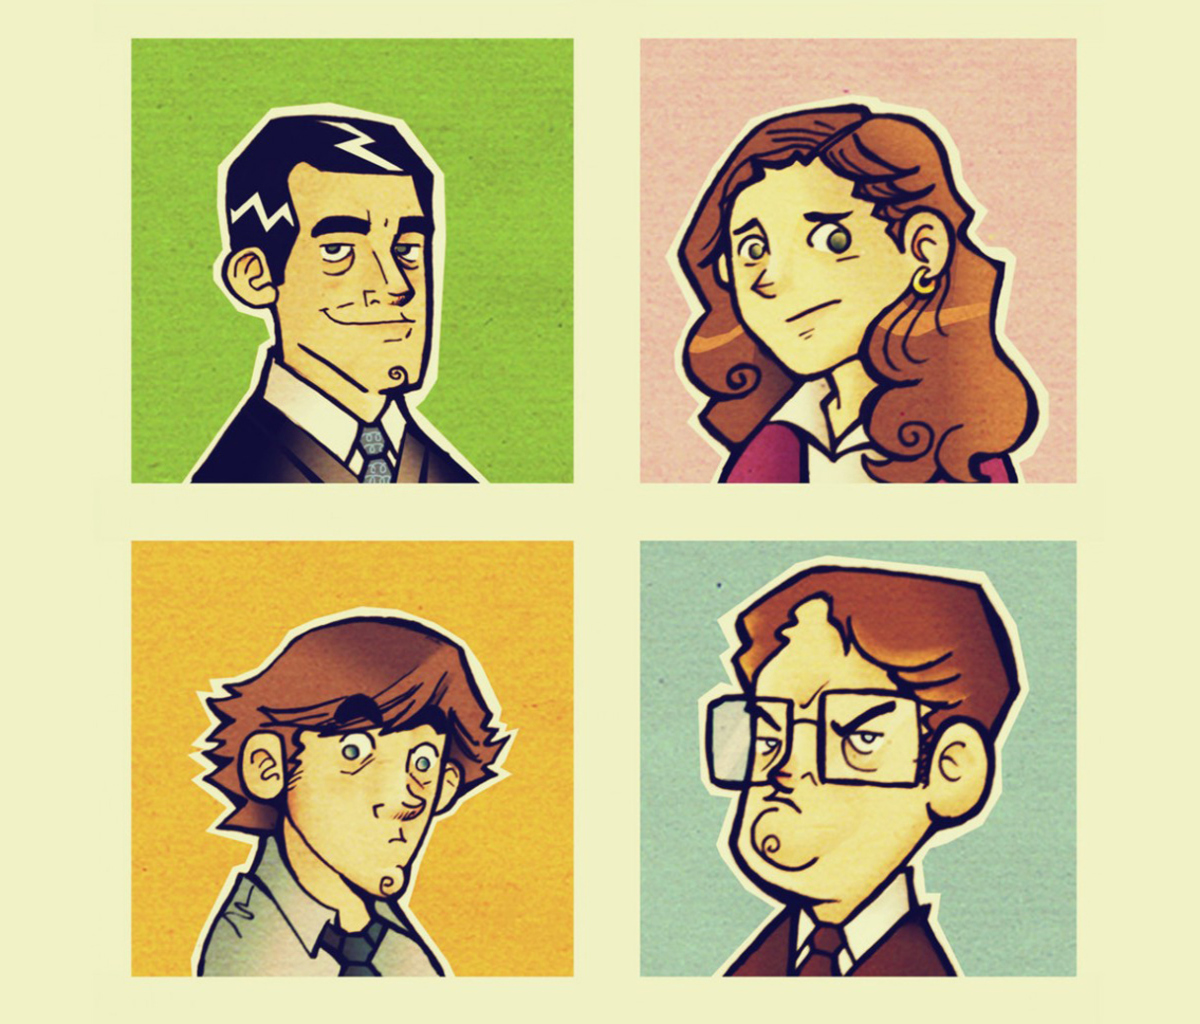 Das Office People Illustration Wallpaper 1200x1024